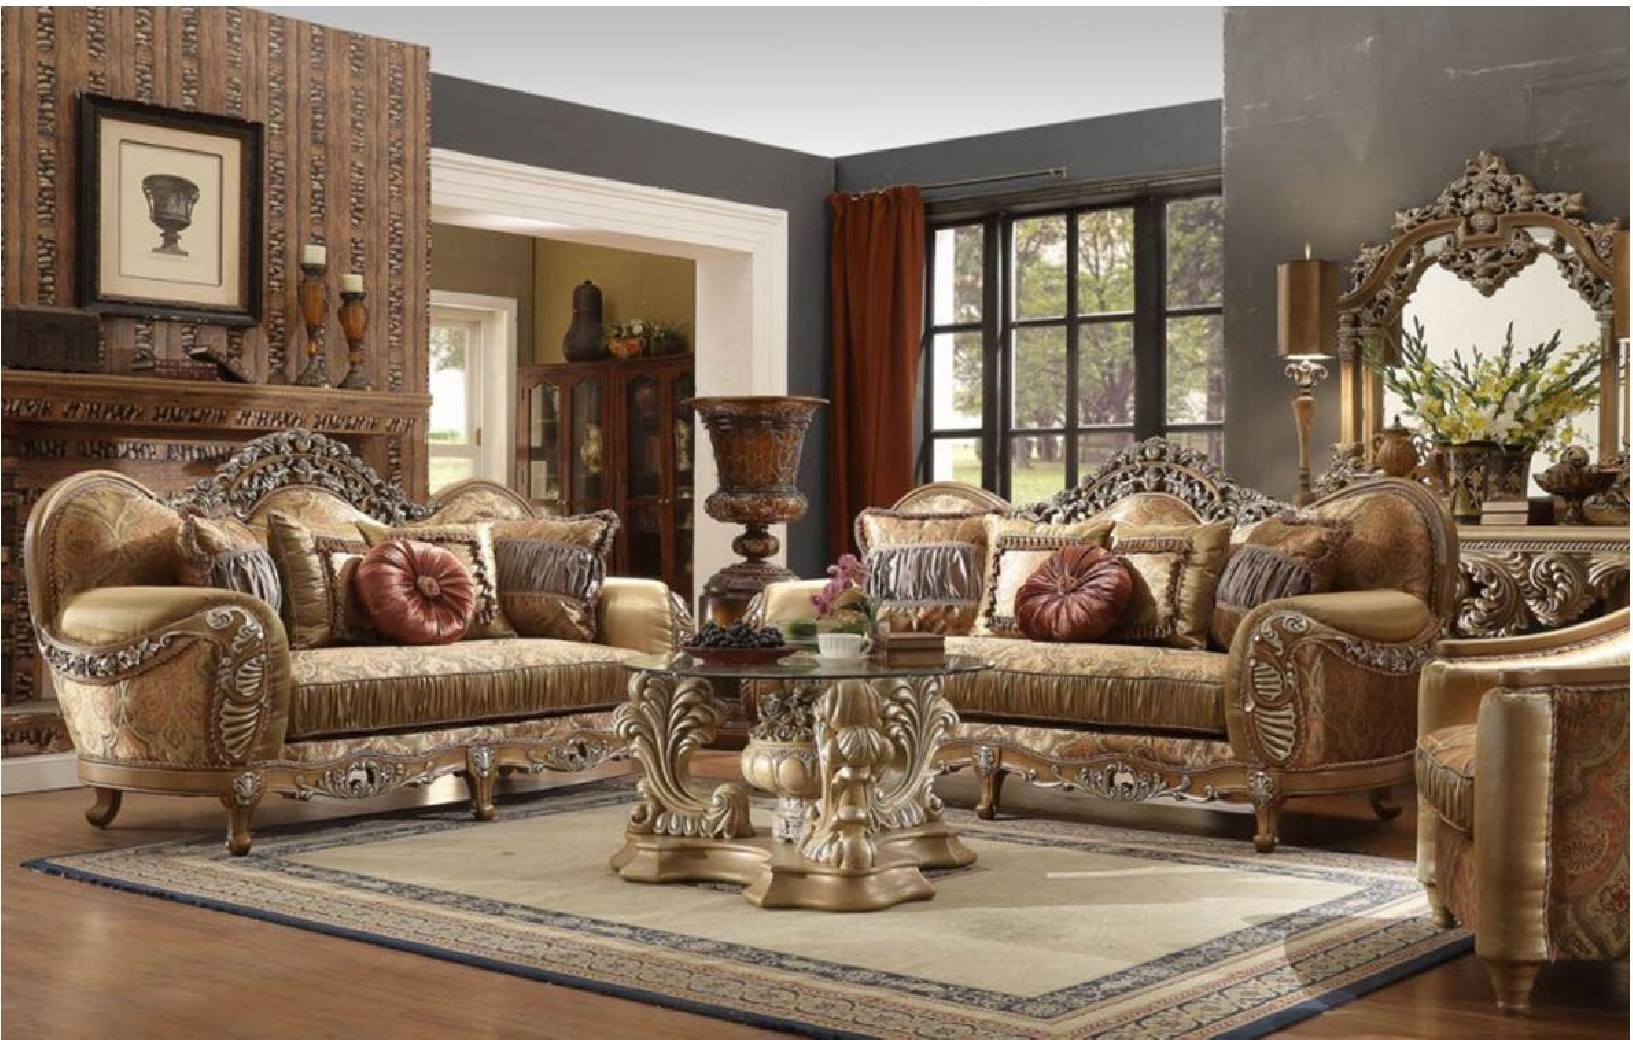 HD 622 Homey Design upholstery living room set Victorian, European Homey Room Designs Html on old rooms, historic rooms, earthy rooms, living room themes for rooms, colorful rooms, tranquil rooms, dude rooms, cheap rooms,